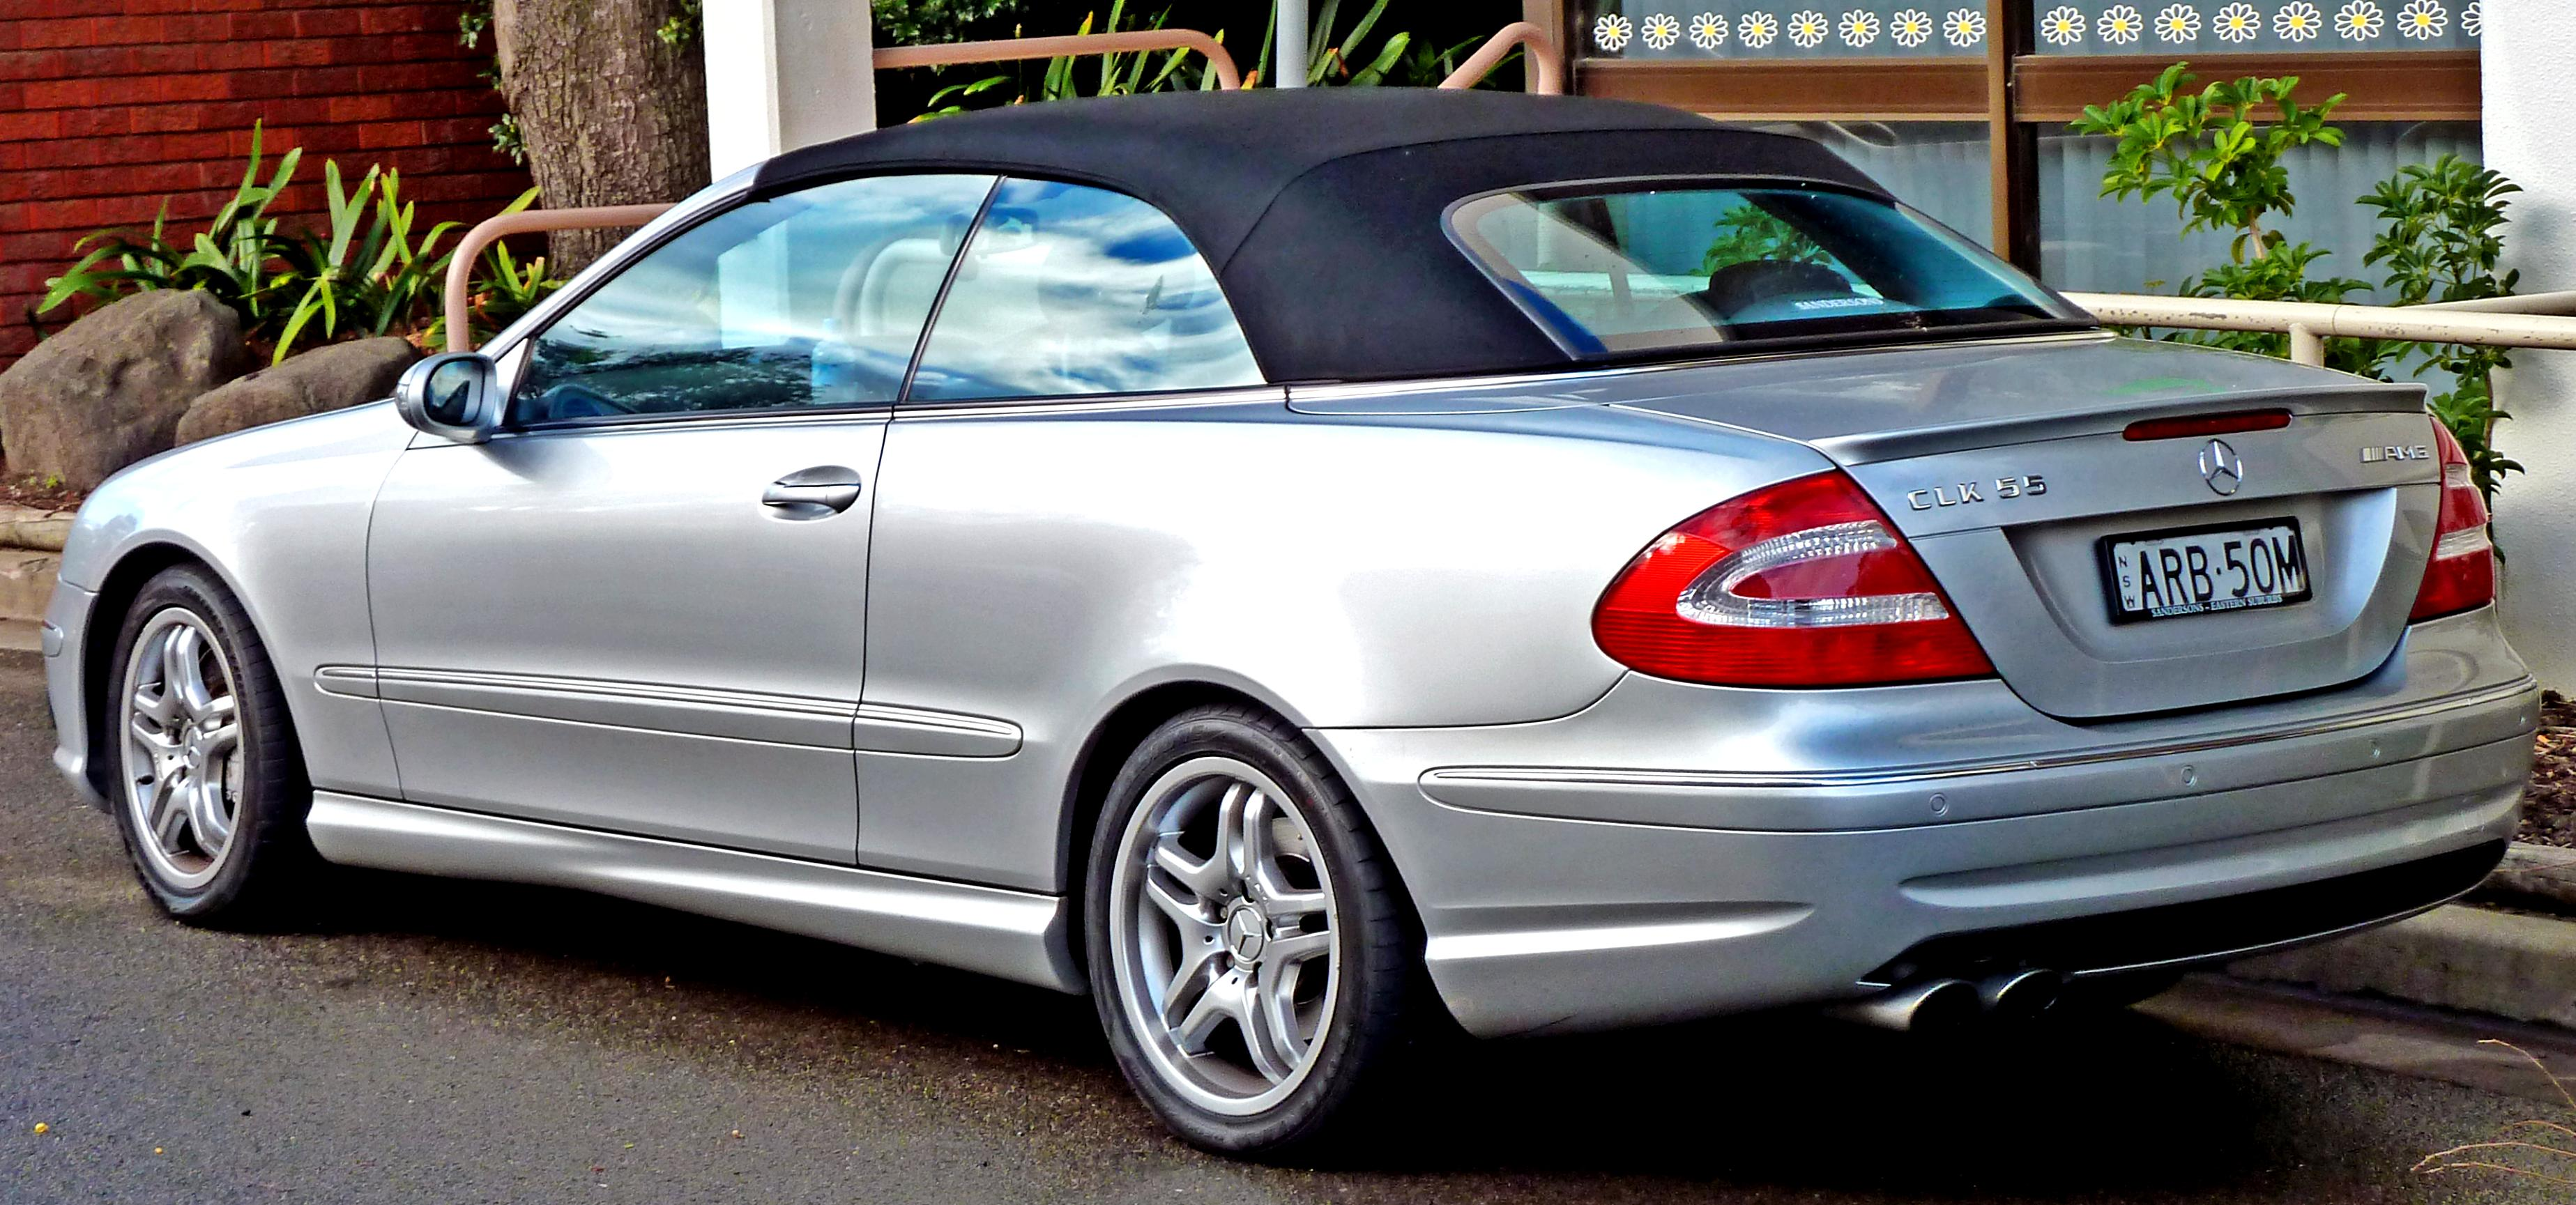 Mercedes benz clk cabrio a209 2005 on for Mercedes benz clk